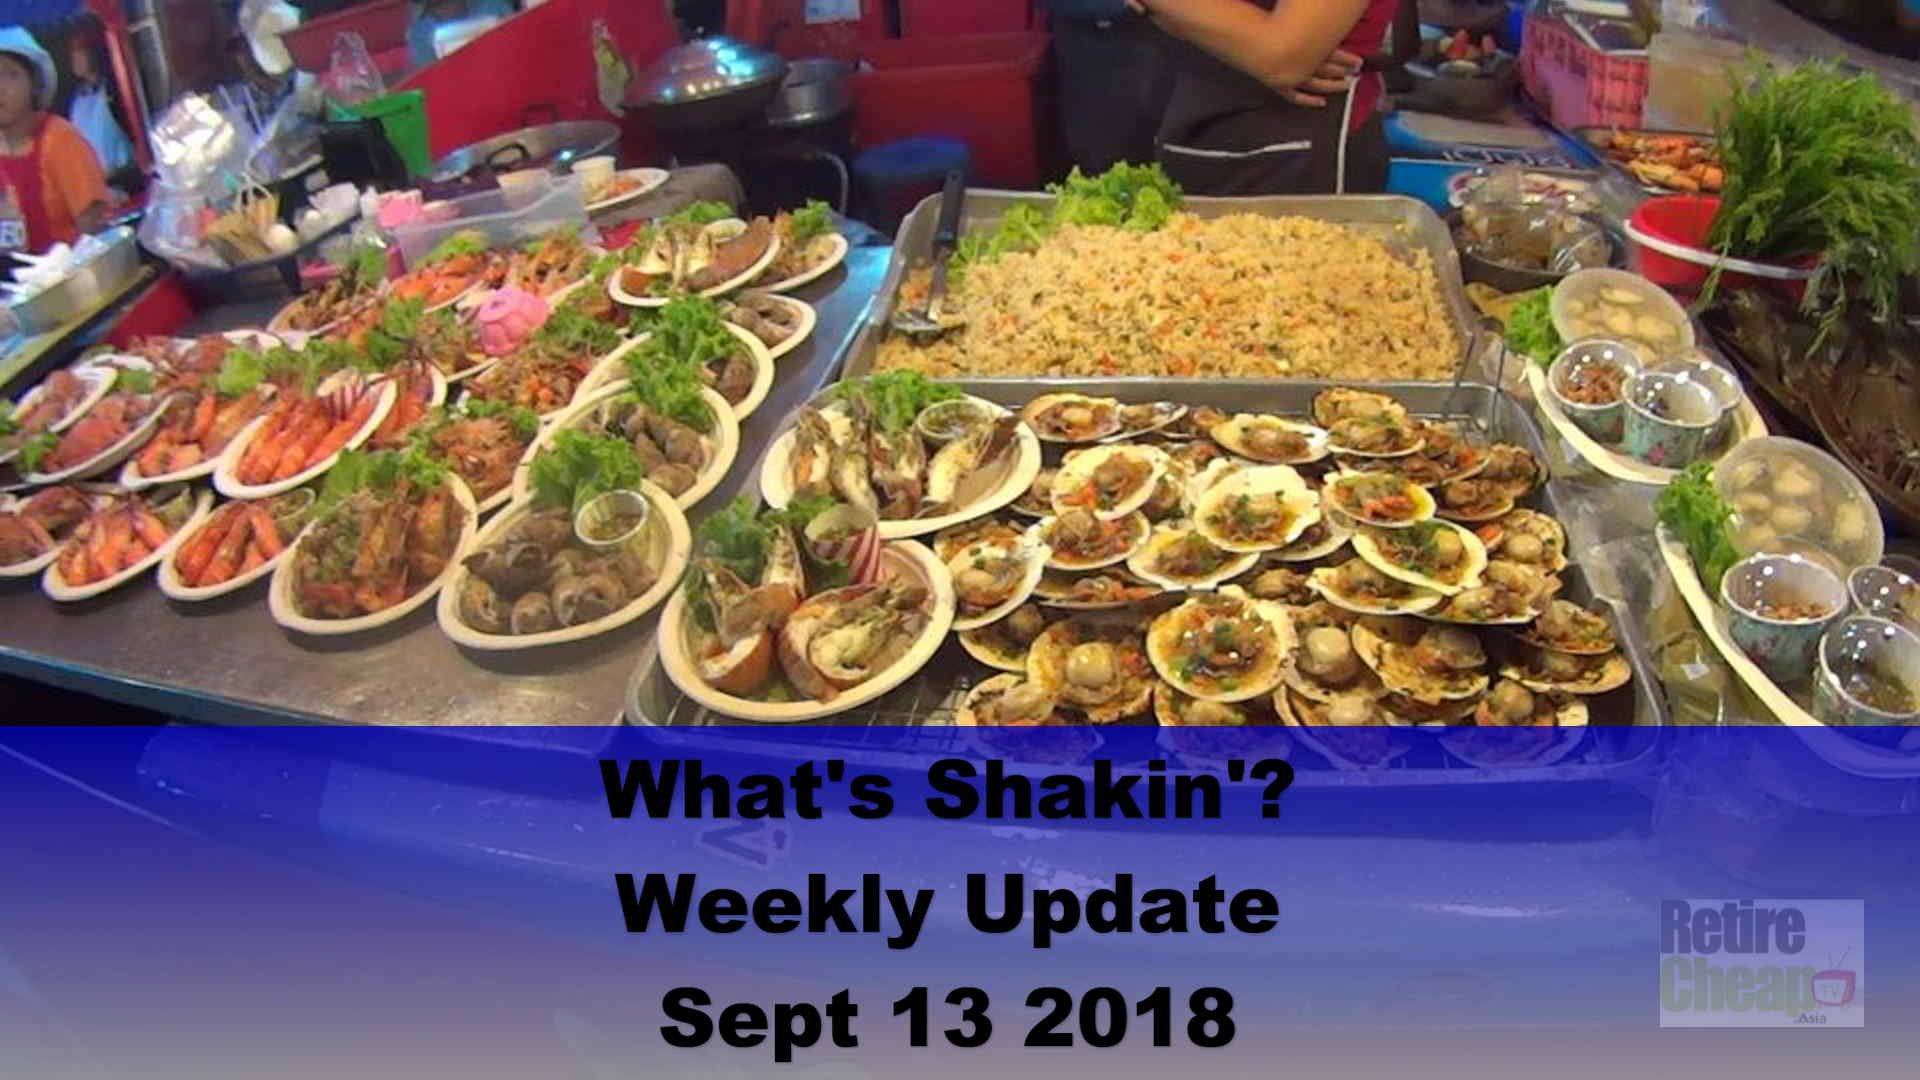 What's Shakn'? Week Sept 13 2018